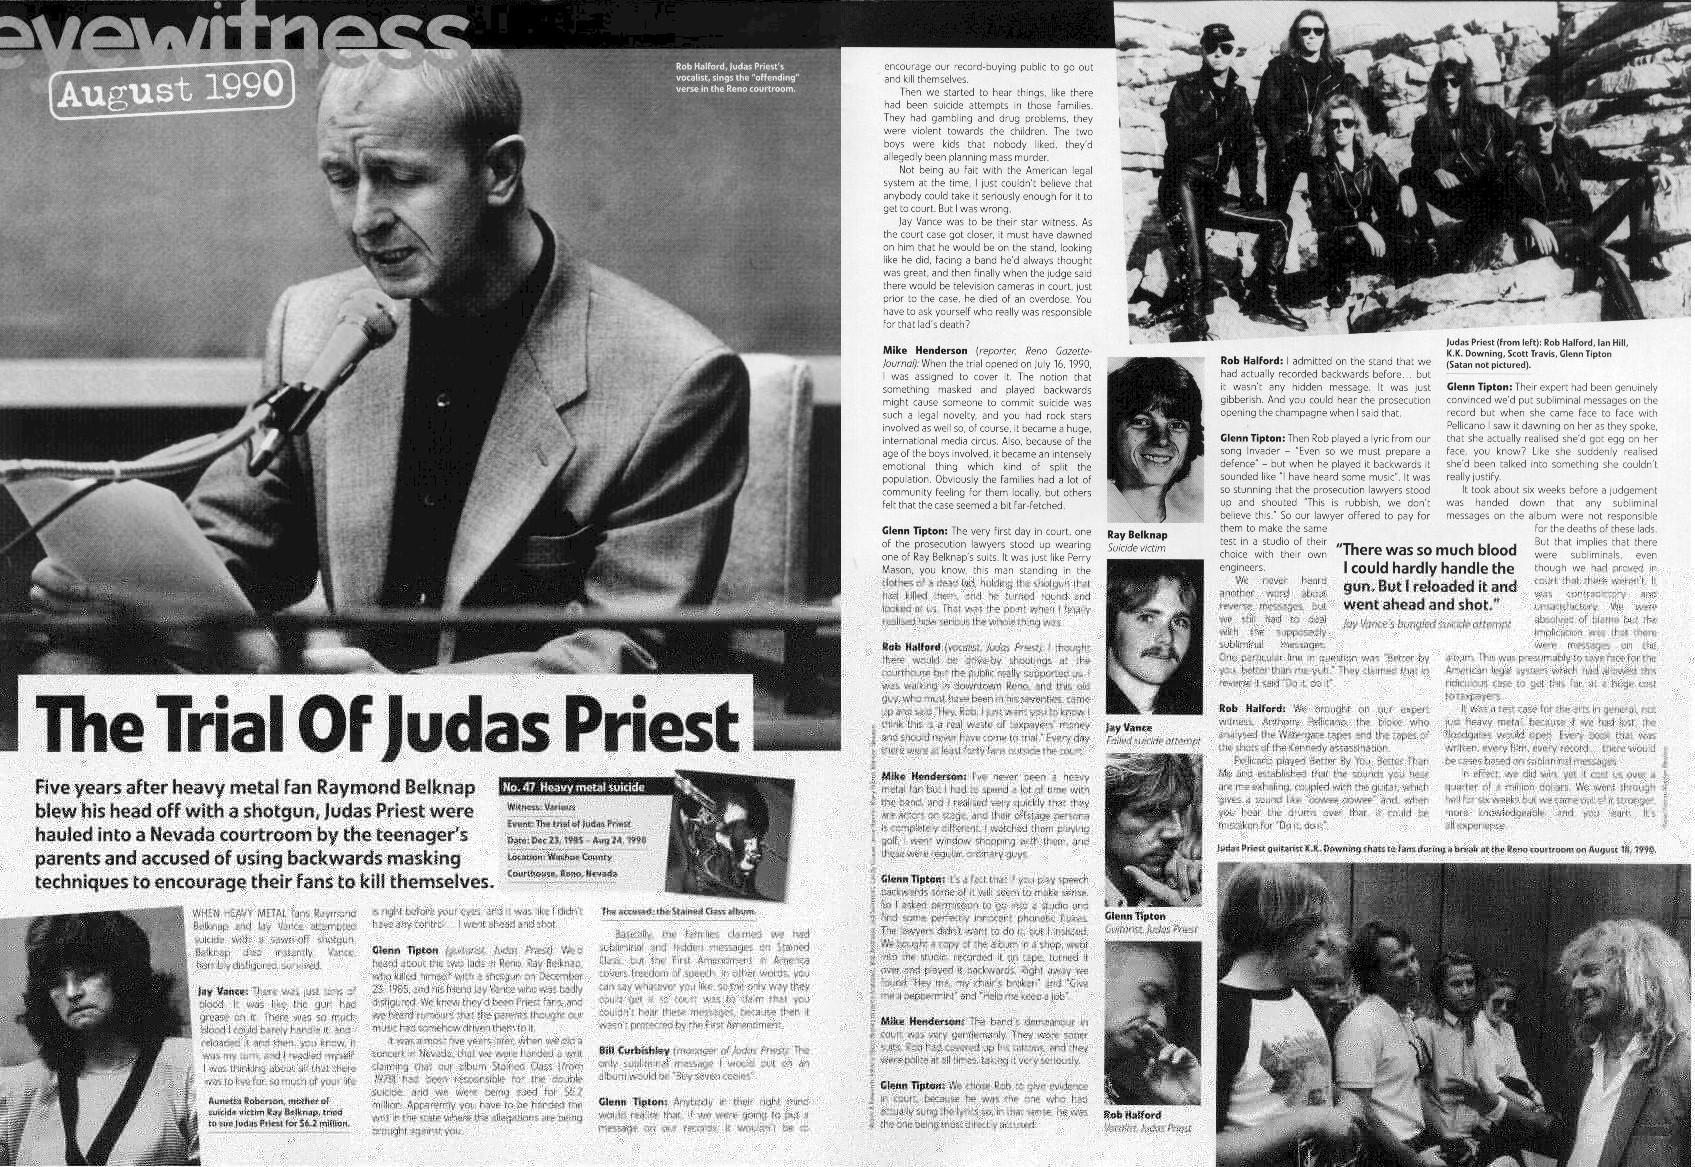 Article about Judas Priest trial.